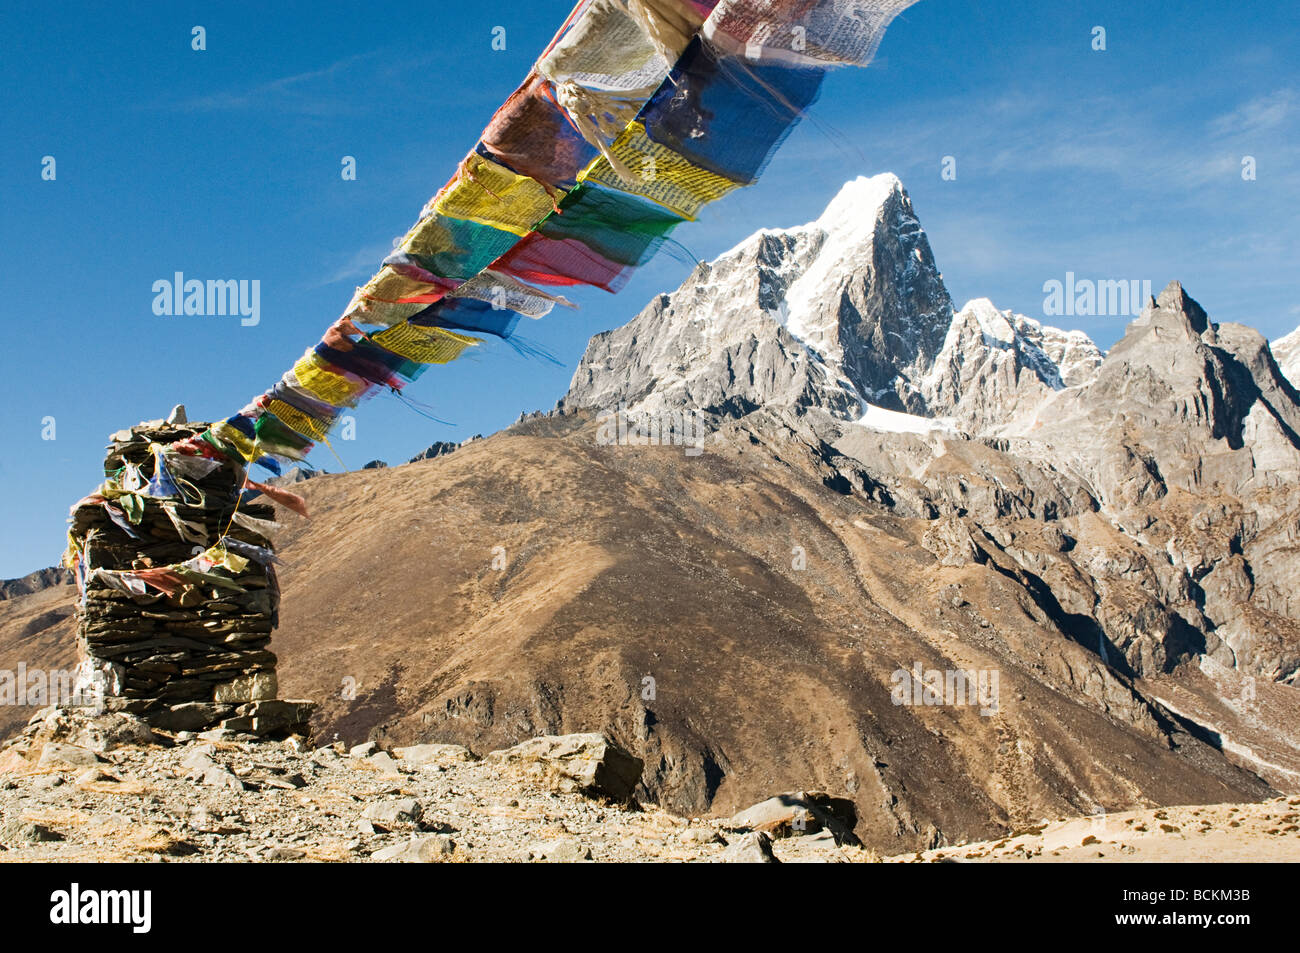 Buddhist prayer flags in himalayas - Stock Image